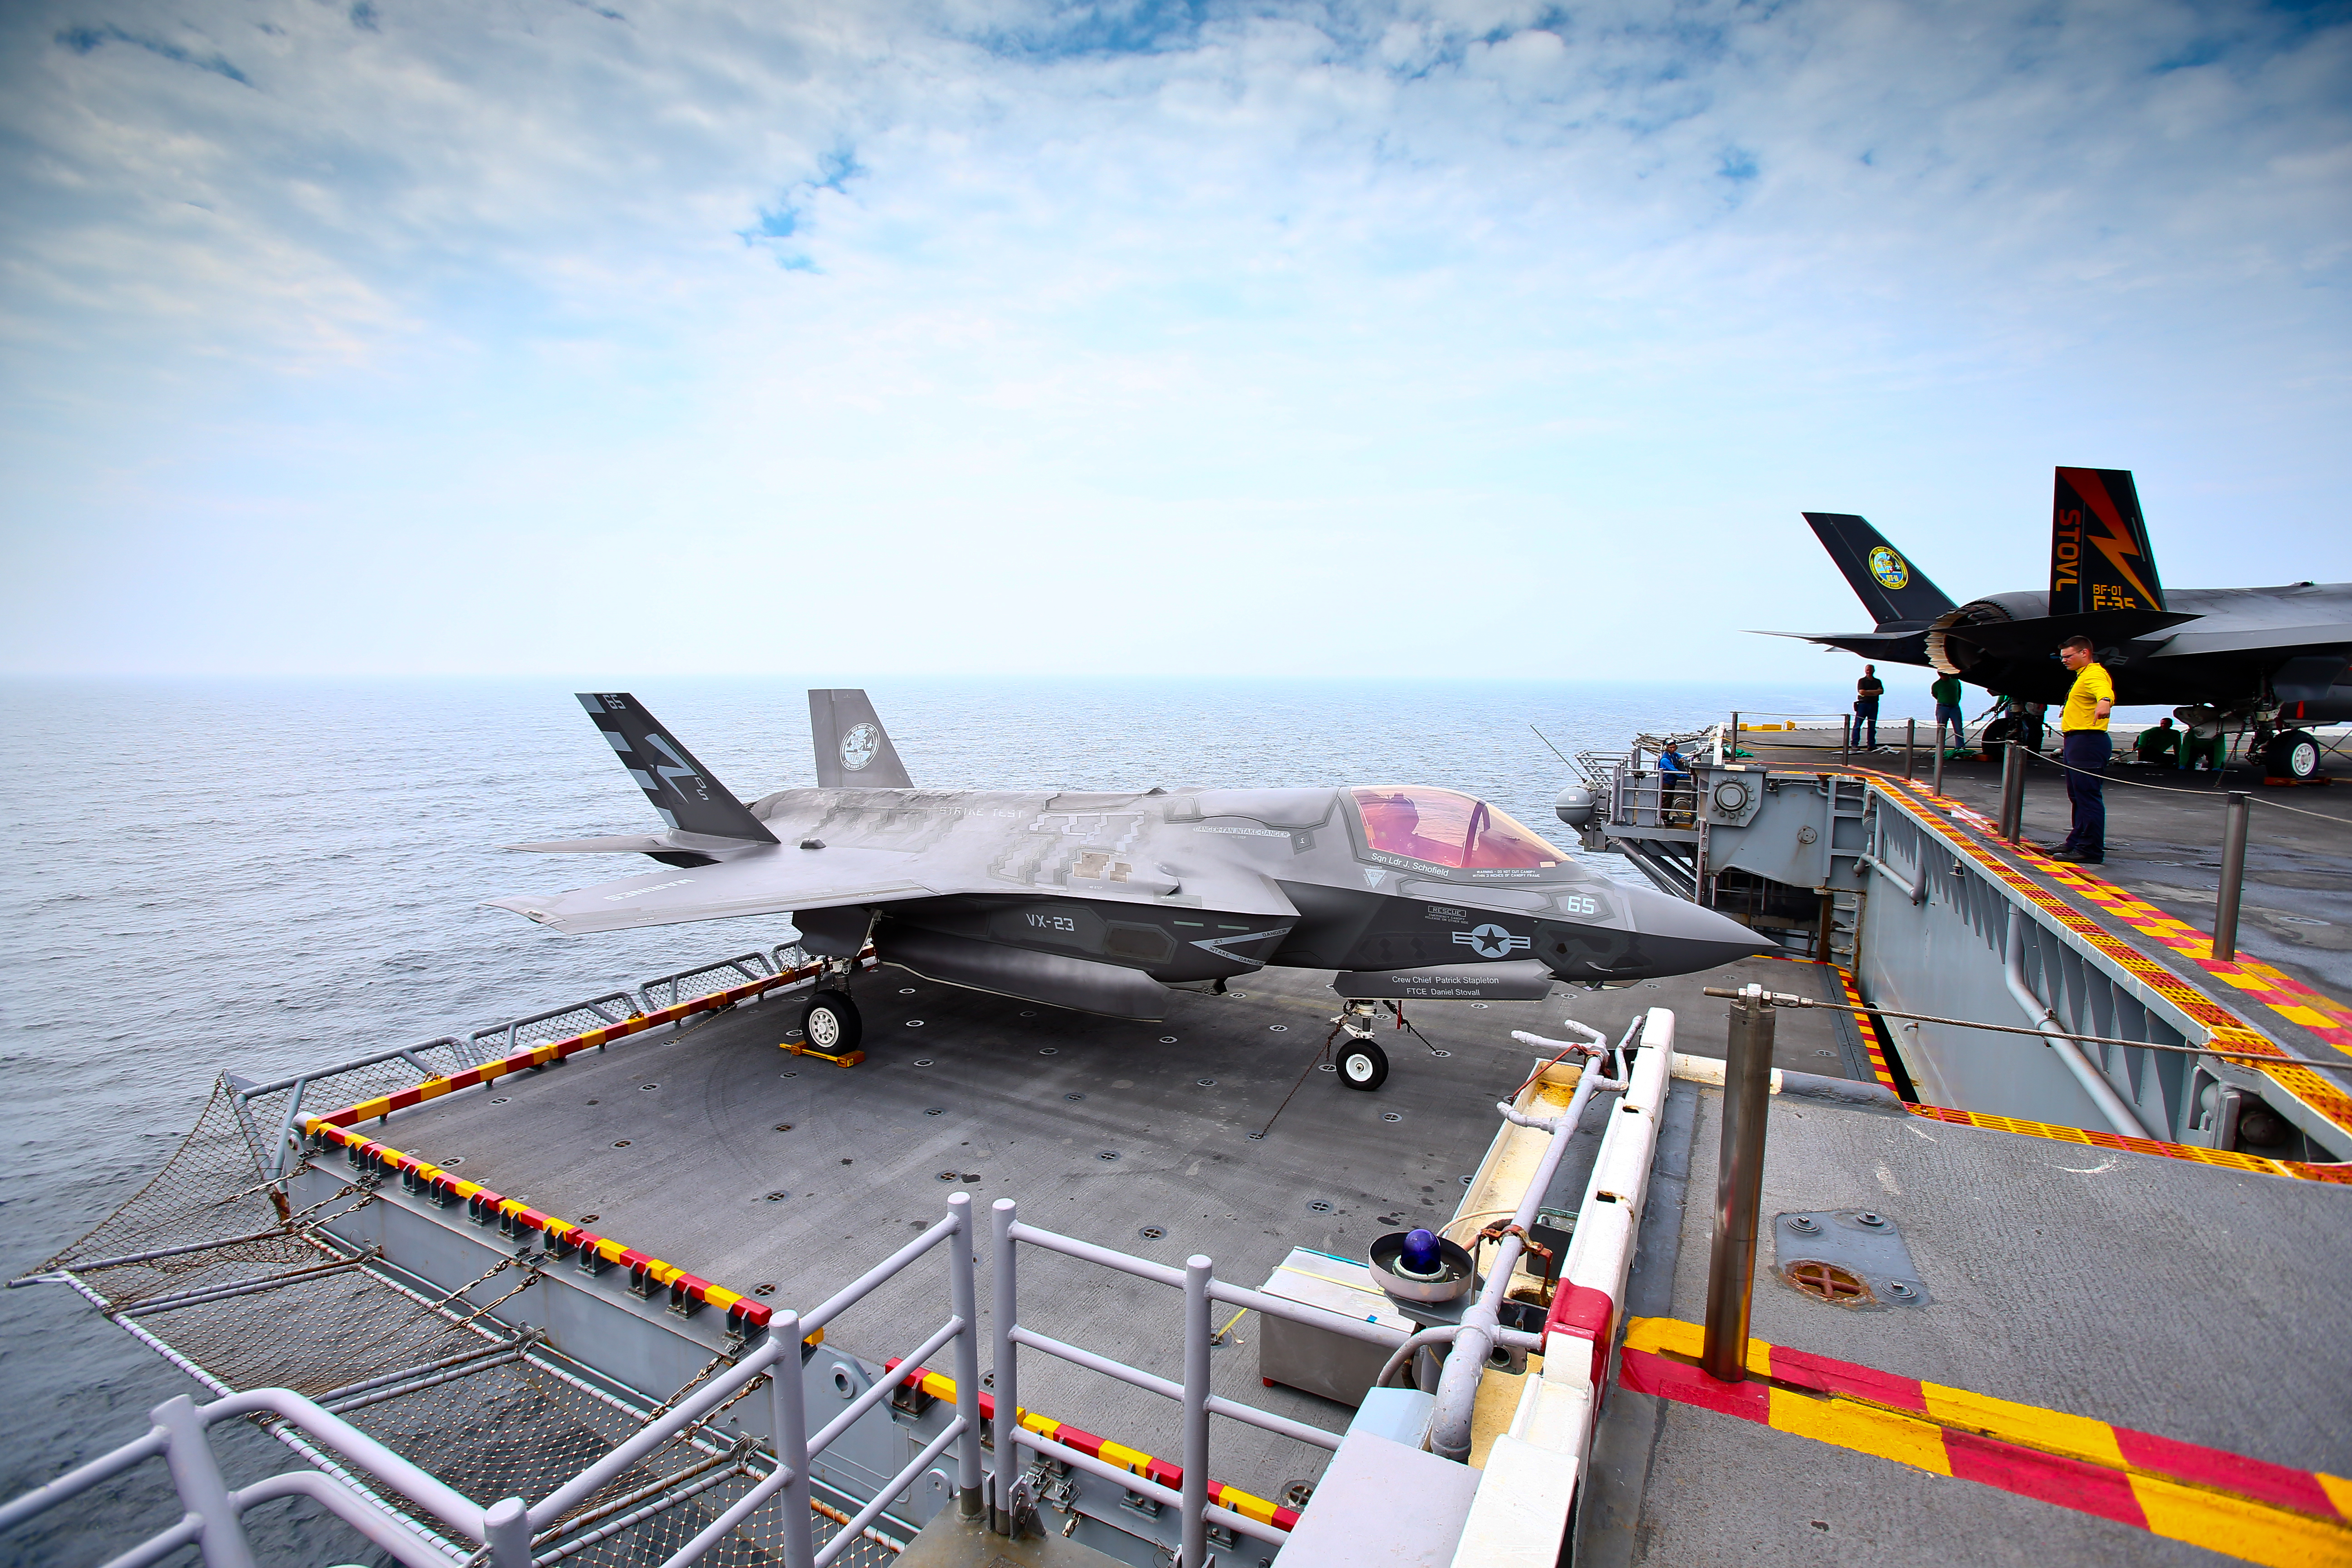 Joint Strike Fighter F-35 Lightning II on the deck of USS Wasp on Aug. 28, 2013 at sea off the coast of Virginia